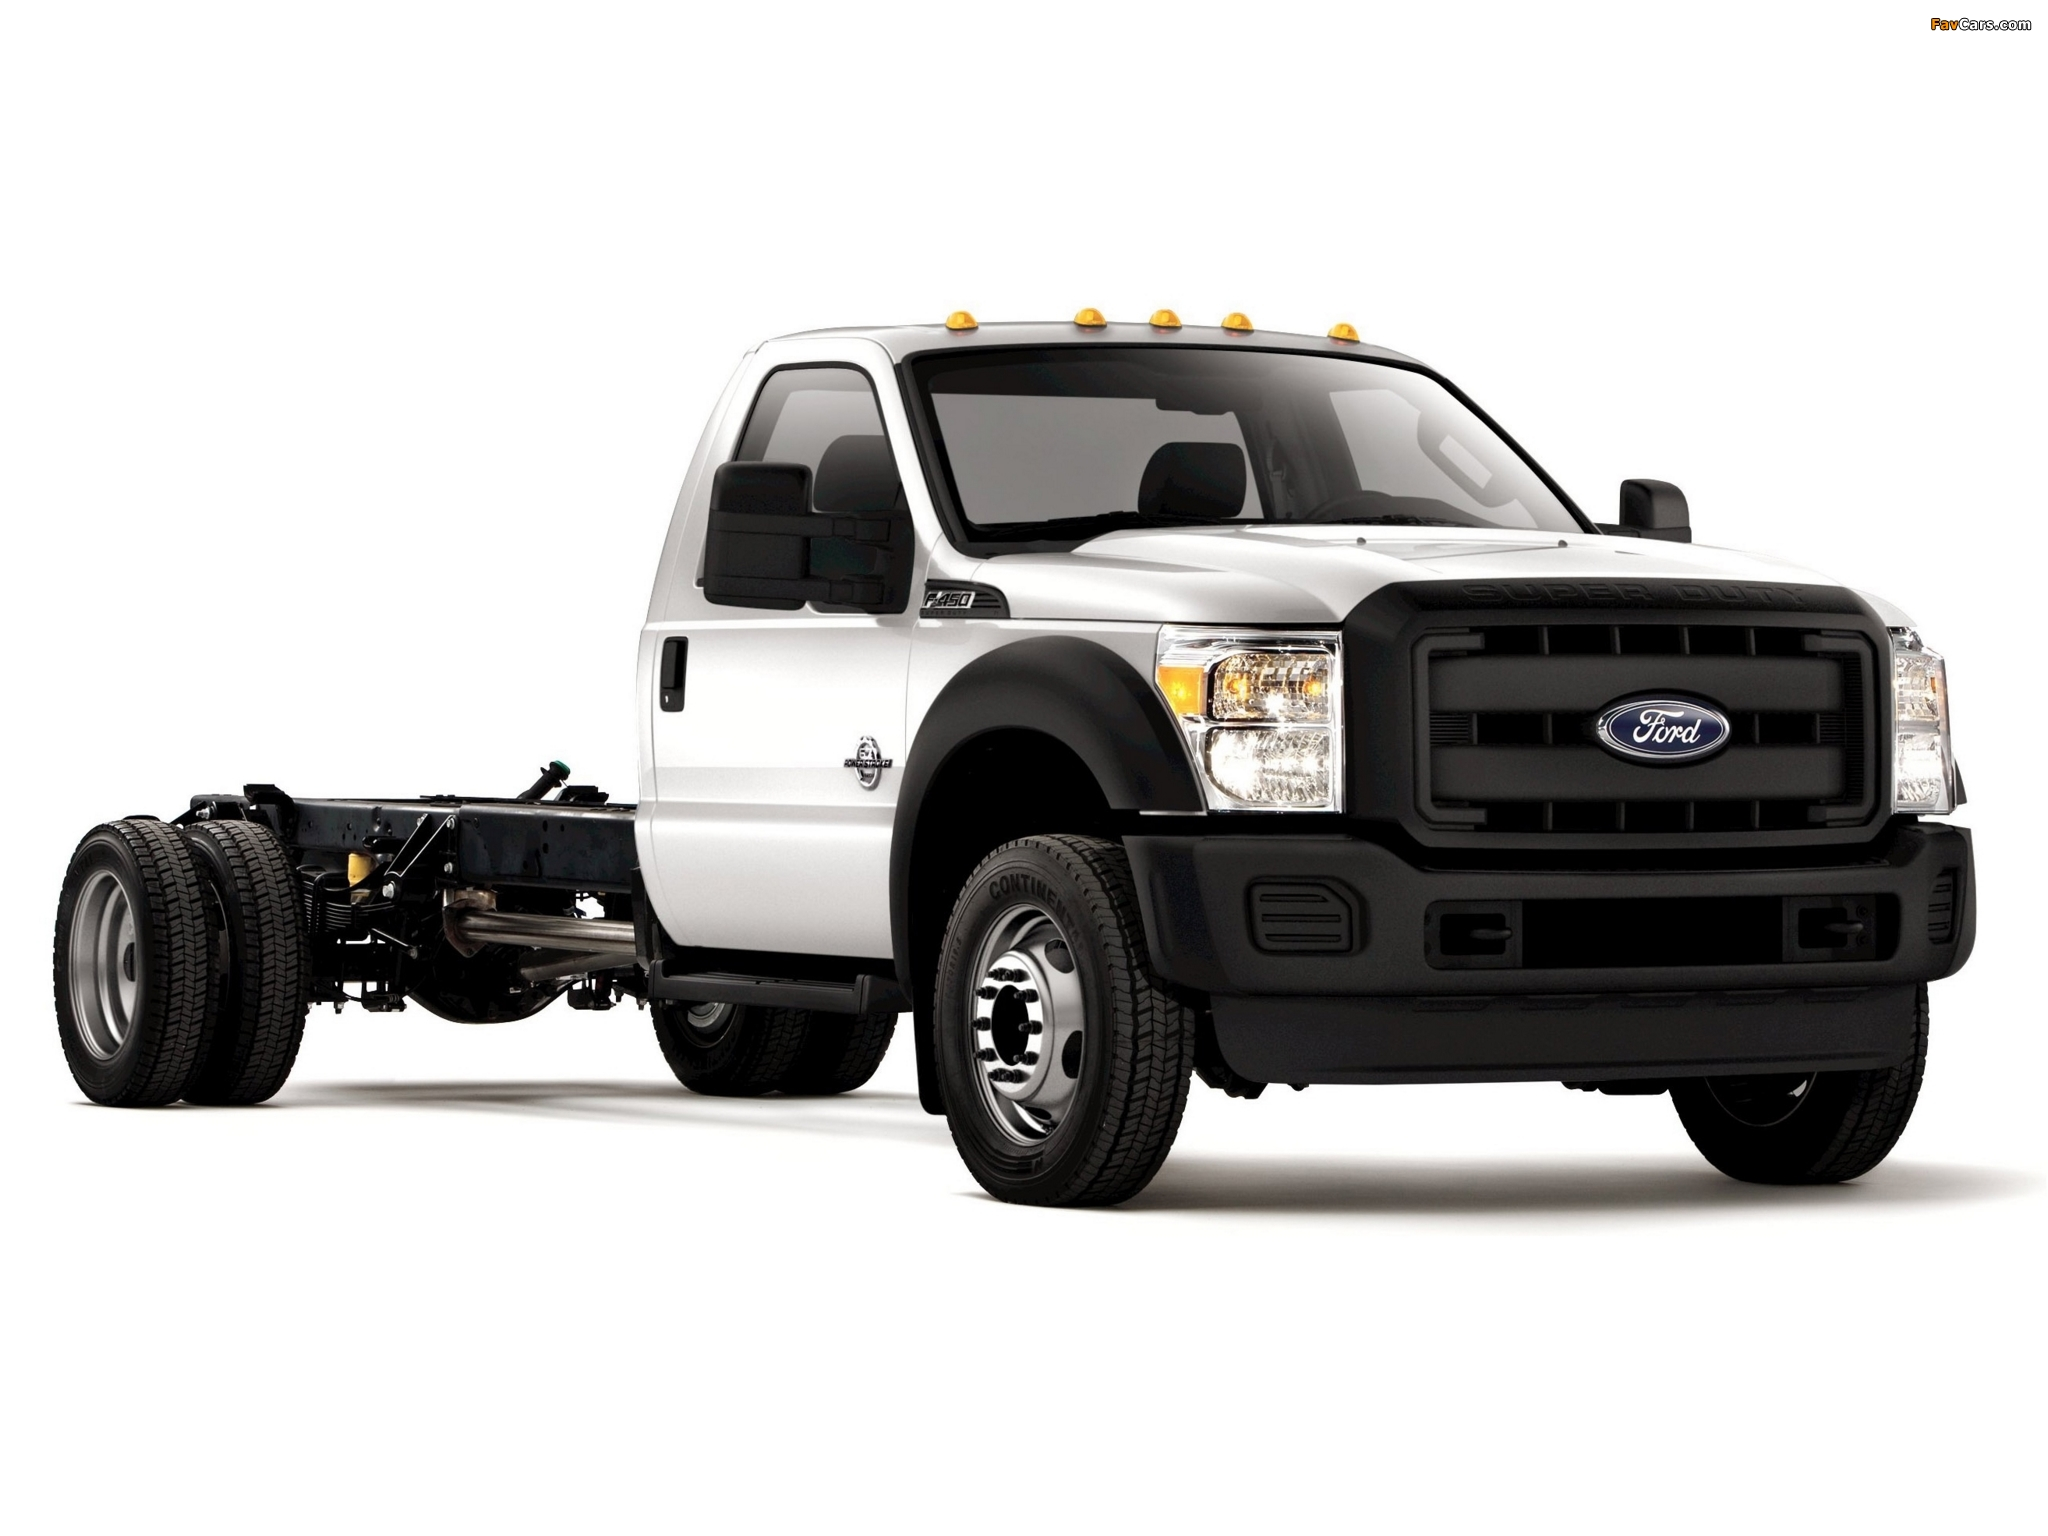 2010 Ford F-450 Super Duty #16